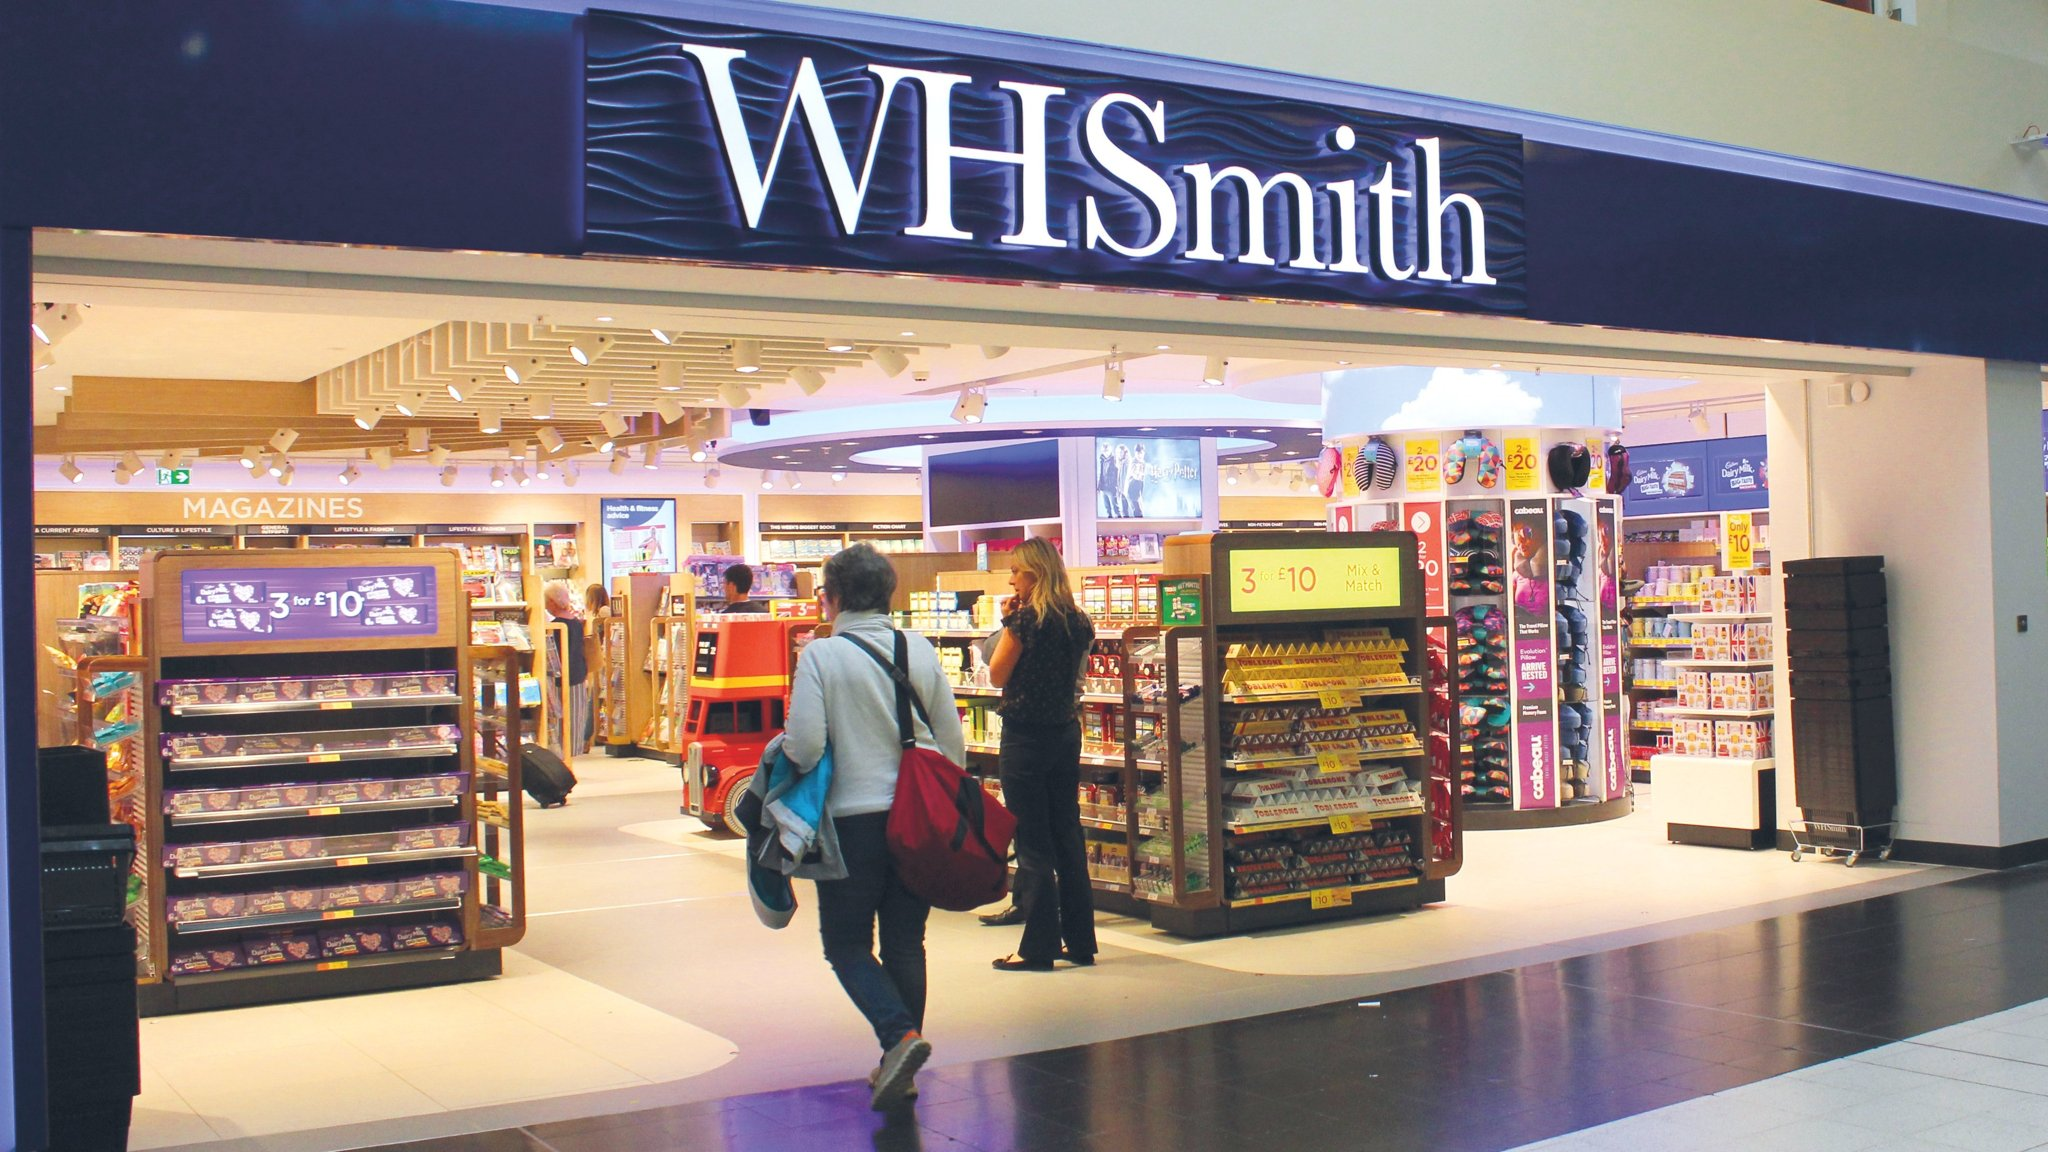 WH Smith declare final dividend increased by 8%. Share buyback of £31m completed